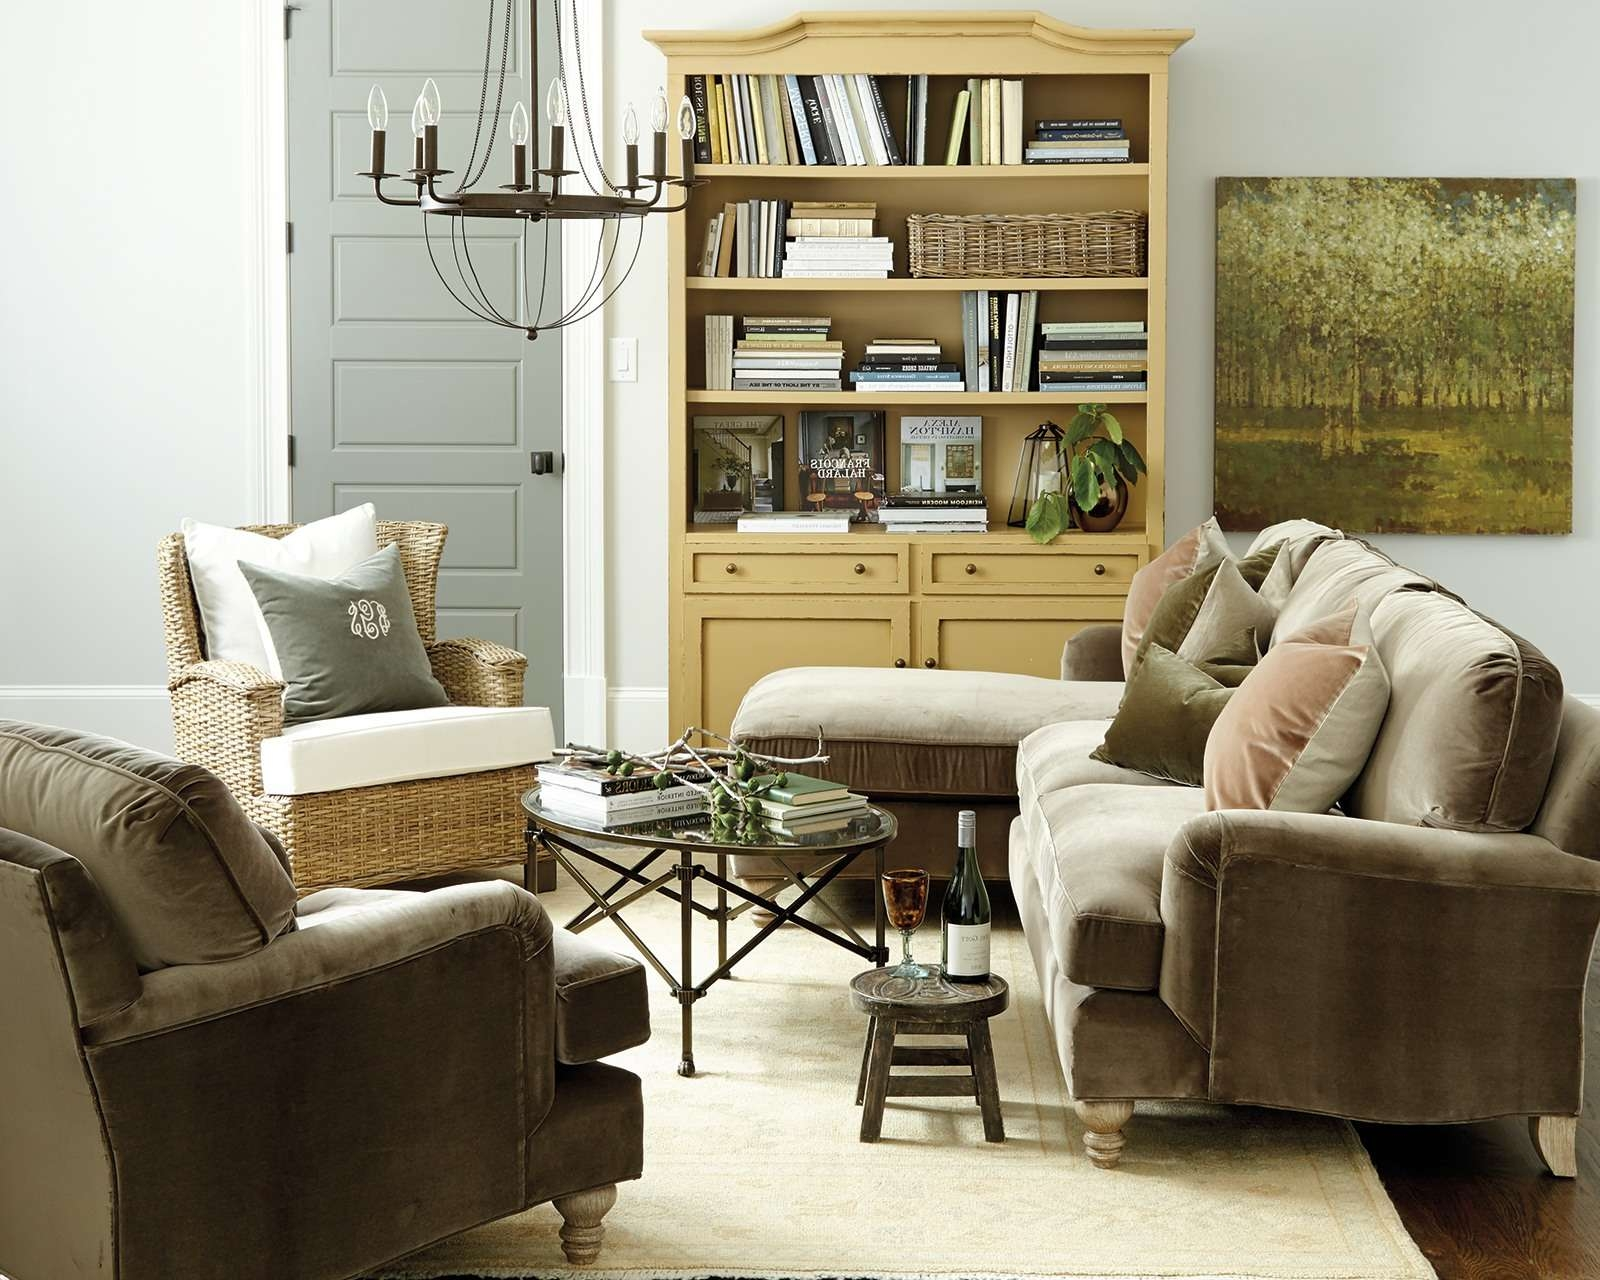 Best And Newest Coffee Table For Sectional Sofa Pertaining To How To Match A Coffee Table To Your Sectional – How To Decorate (View 3 of 20)